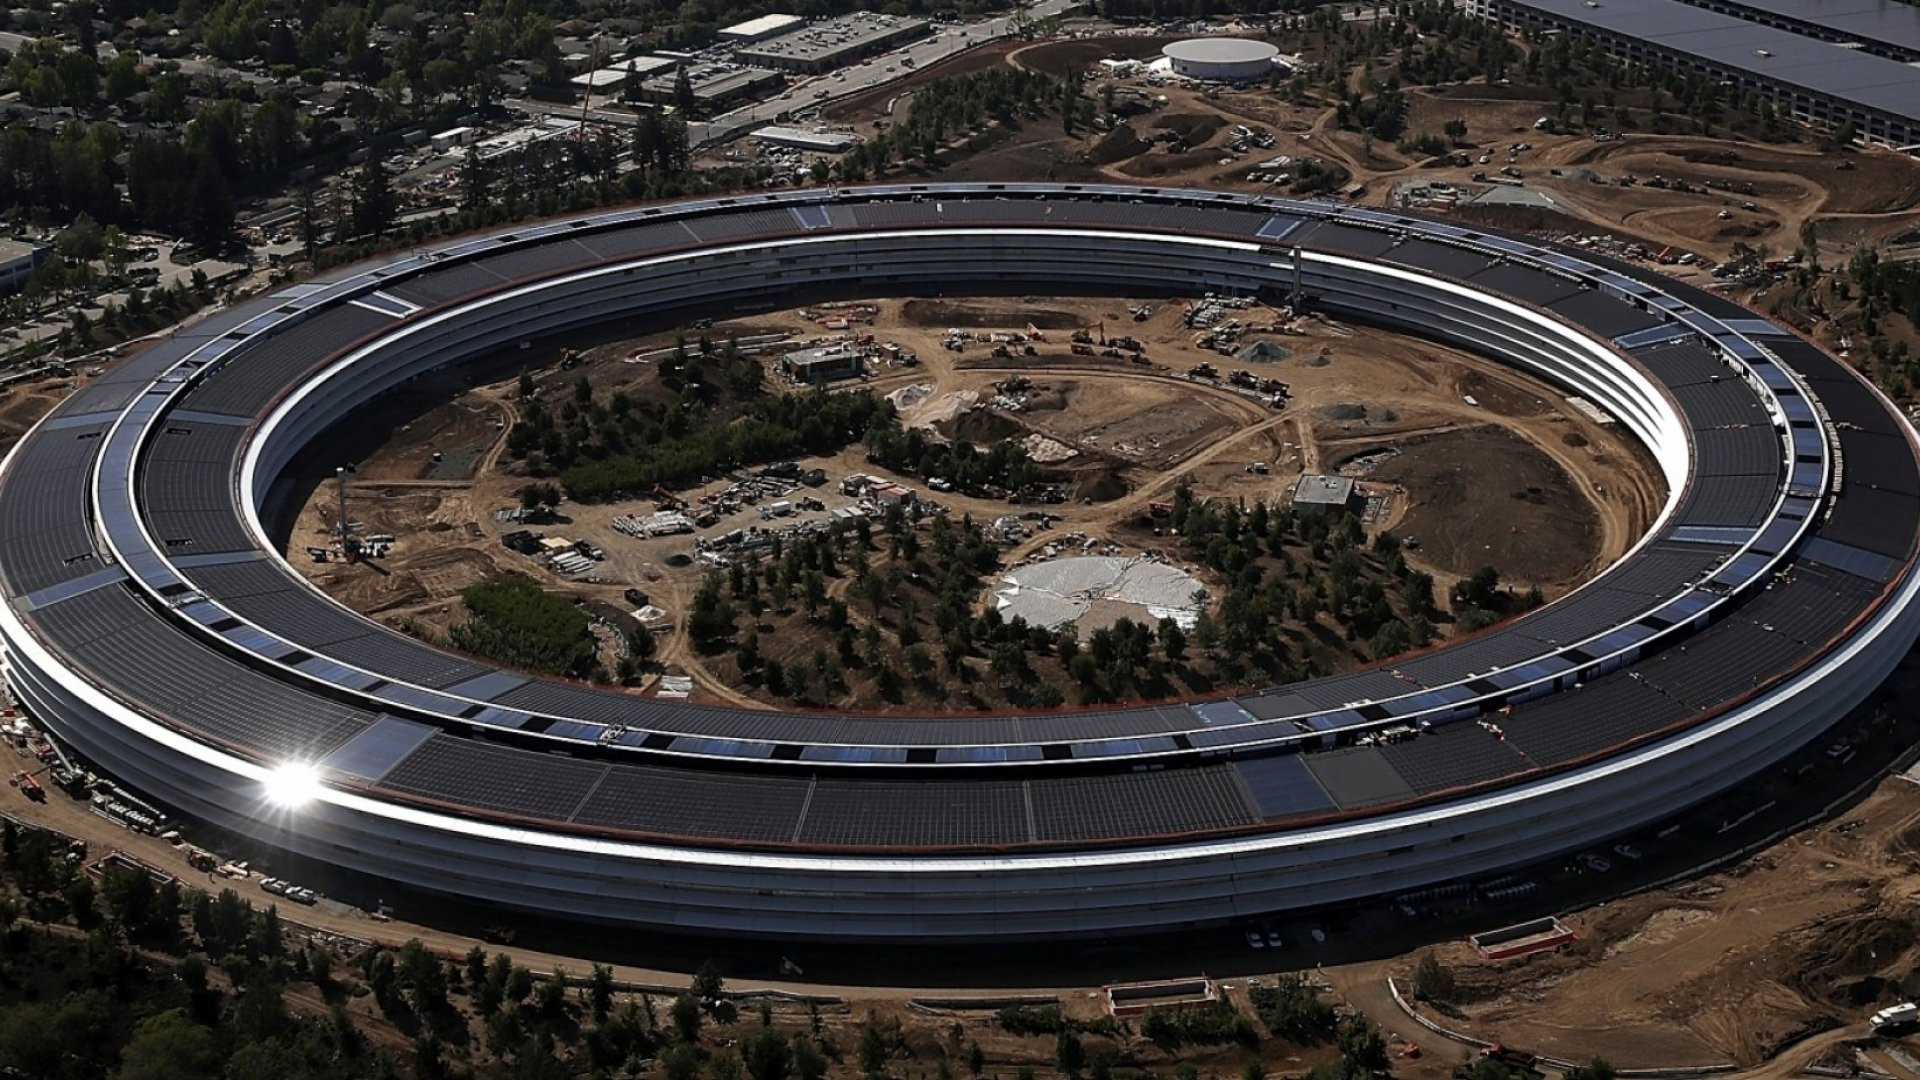 An aerial view of the new Apple headquarters on April 28, 2017 in Cupertino, California. Apple's new 175-acre 'spaceship' campus dubbed 'Apple Park' is nearing completion and is set to begin moving in Apple employees.